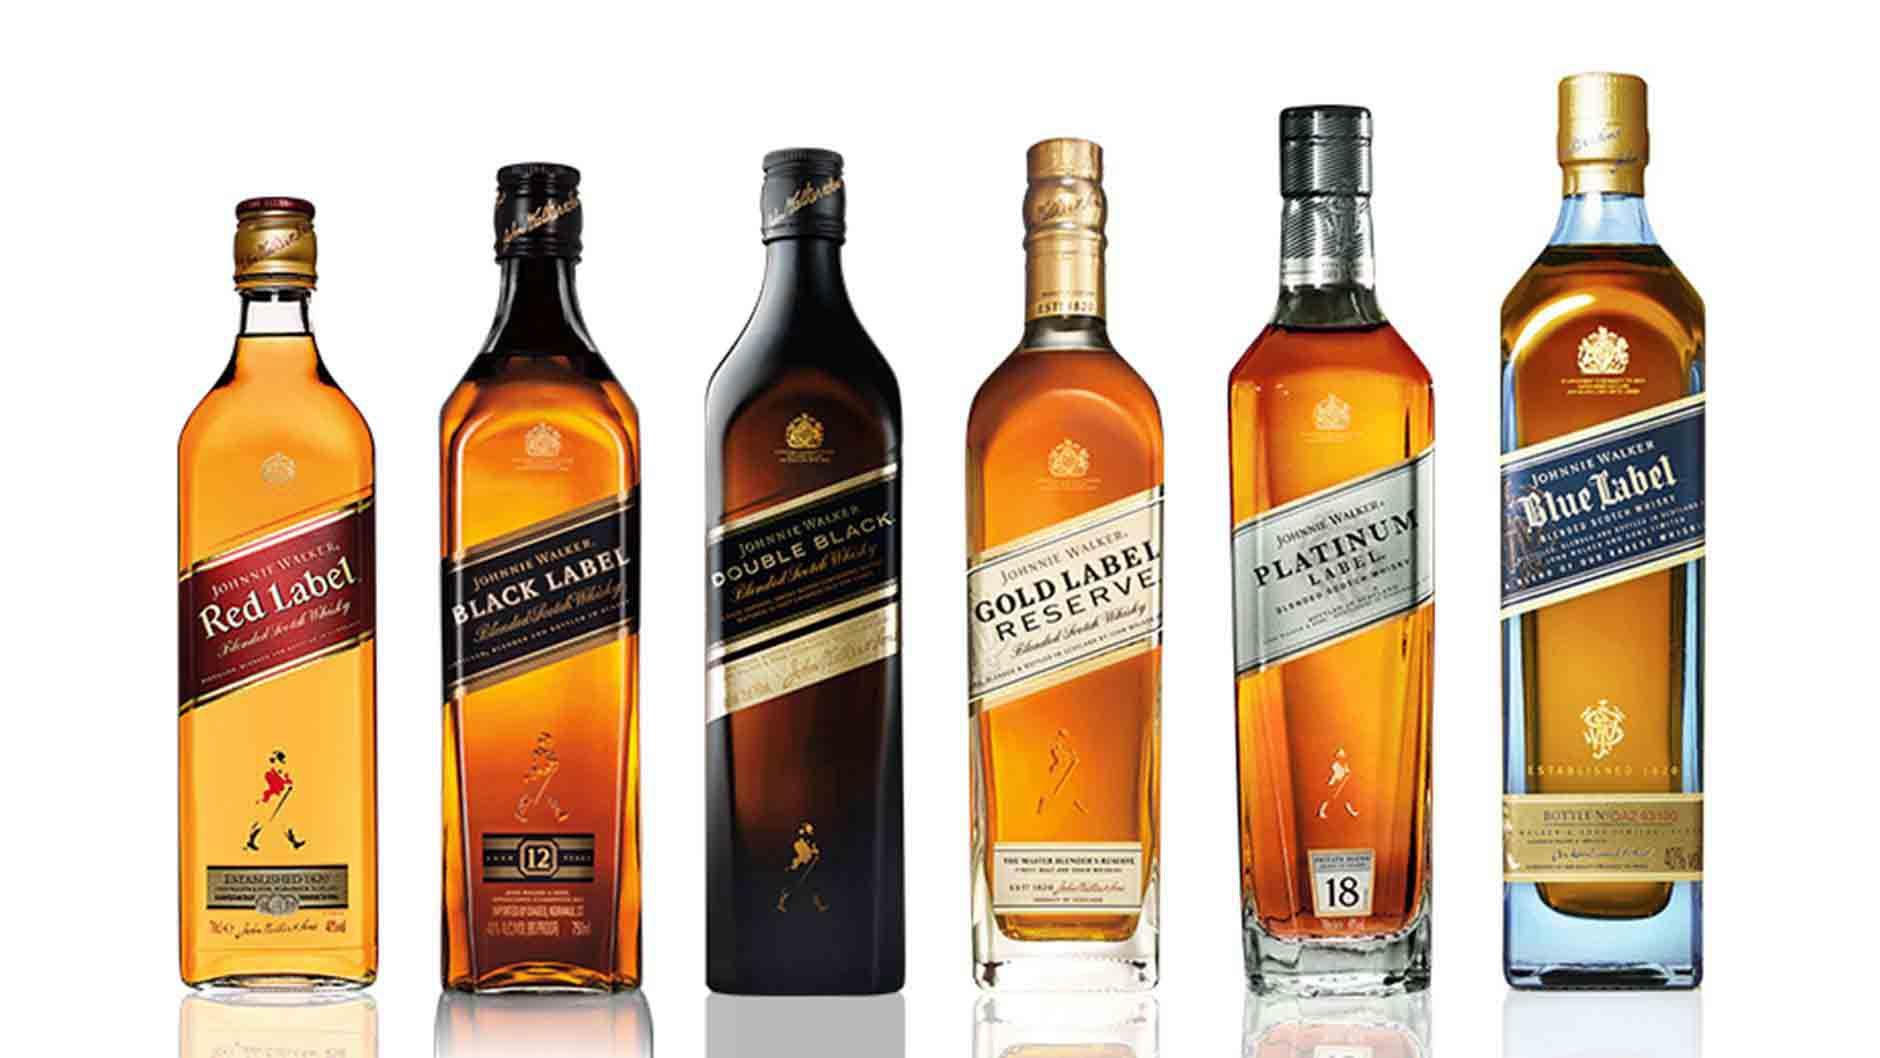 Bottle of Johnnie Walker Colour whisky range